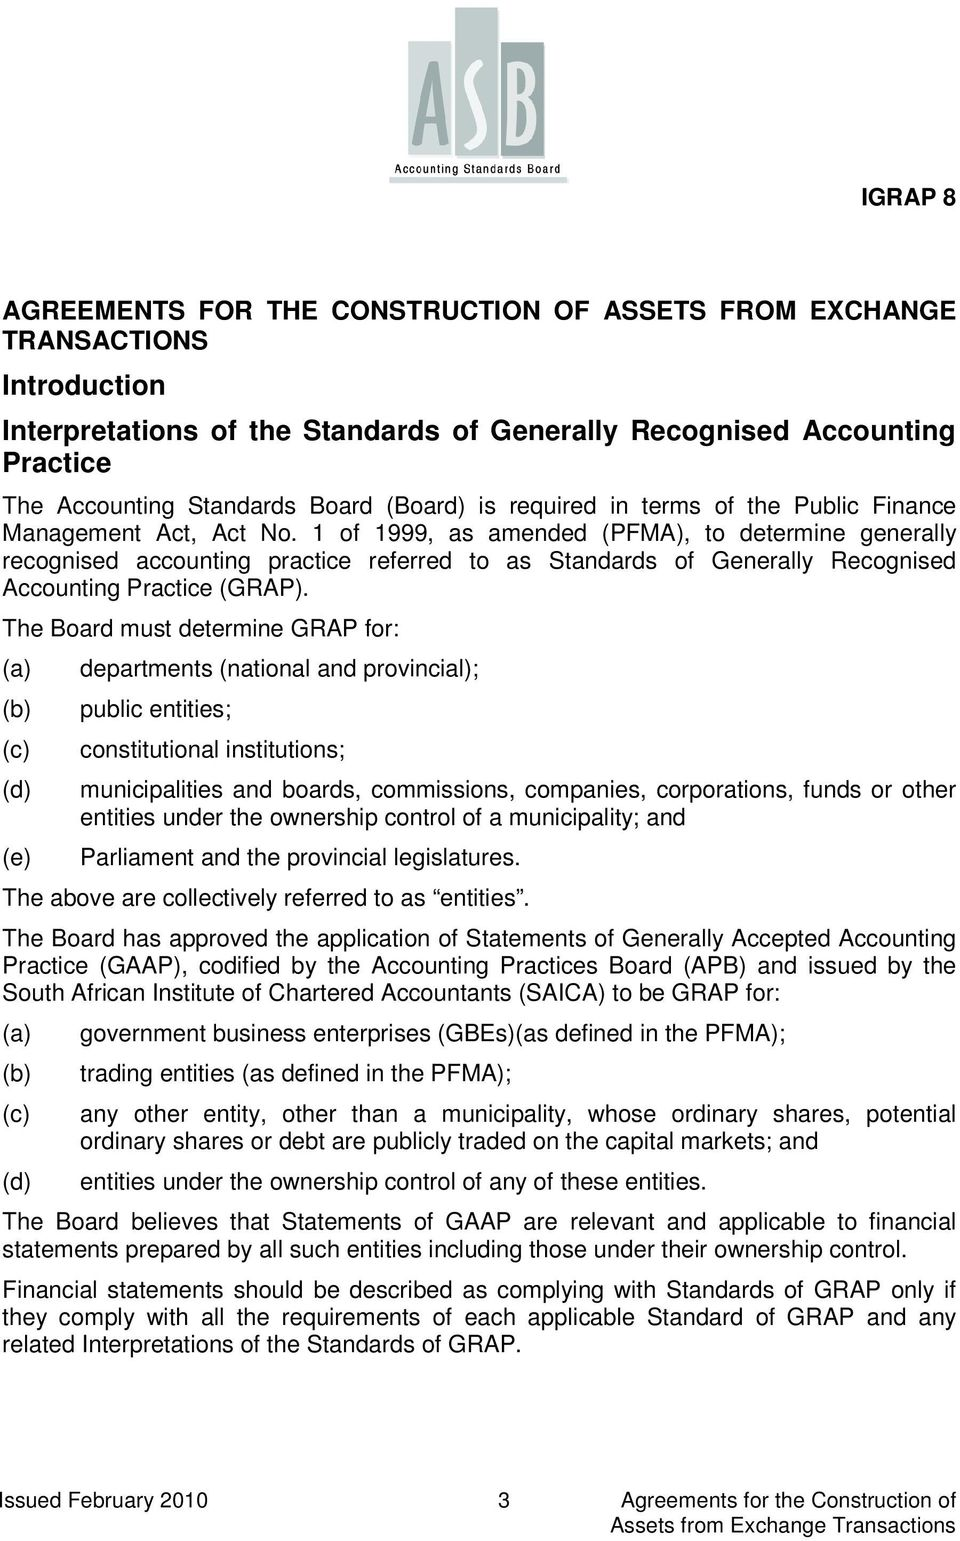 1 of 1999, as amended (PFMA), to determine generally recognised accounting practice referred to as Standards of Generally Recognised Accounting Practice (GRAP).